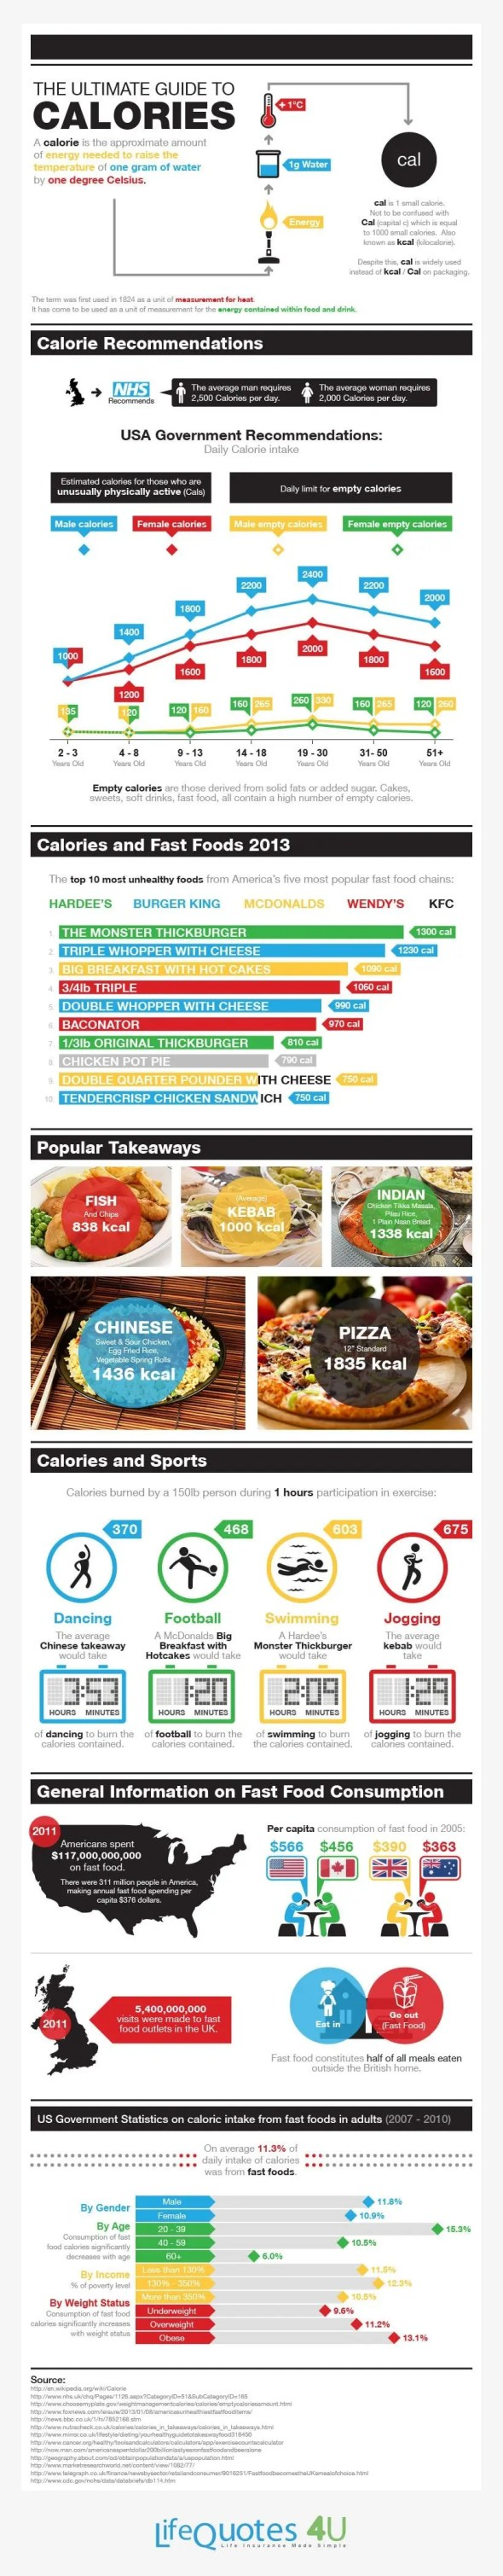 calories-infographic-v2